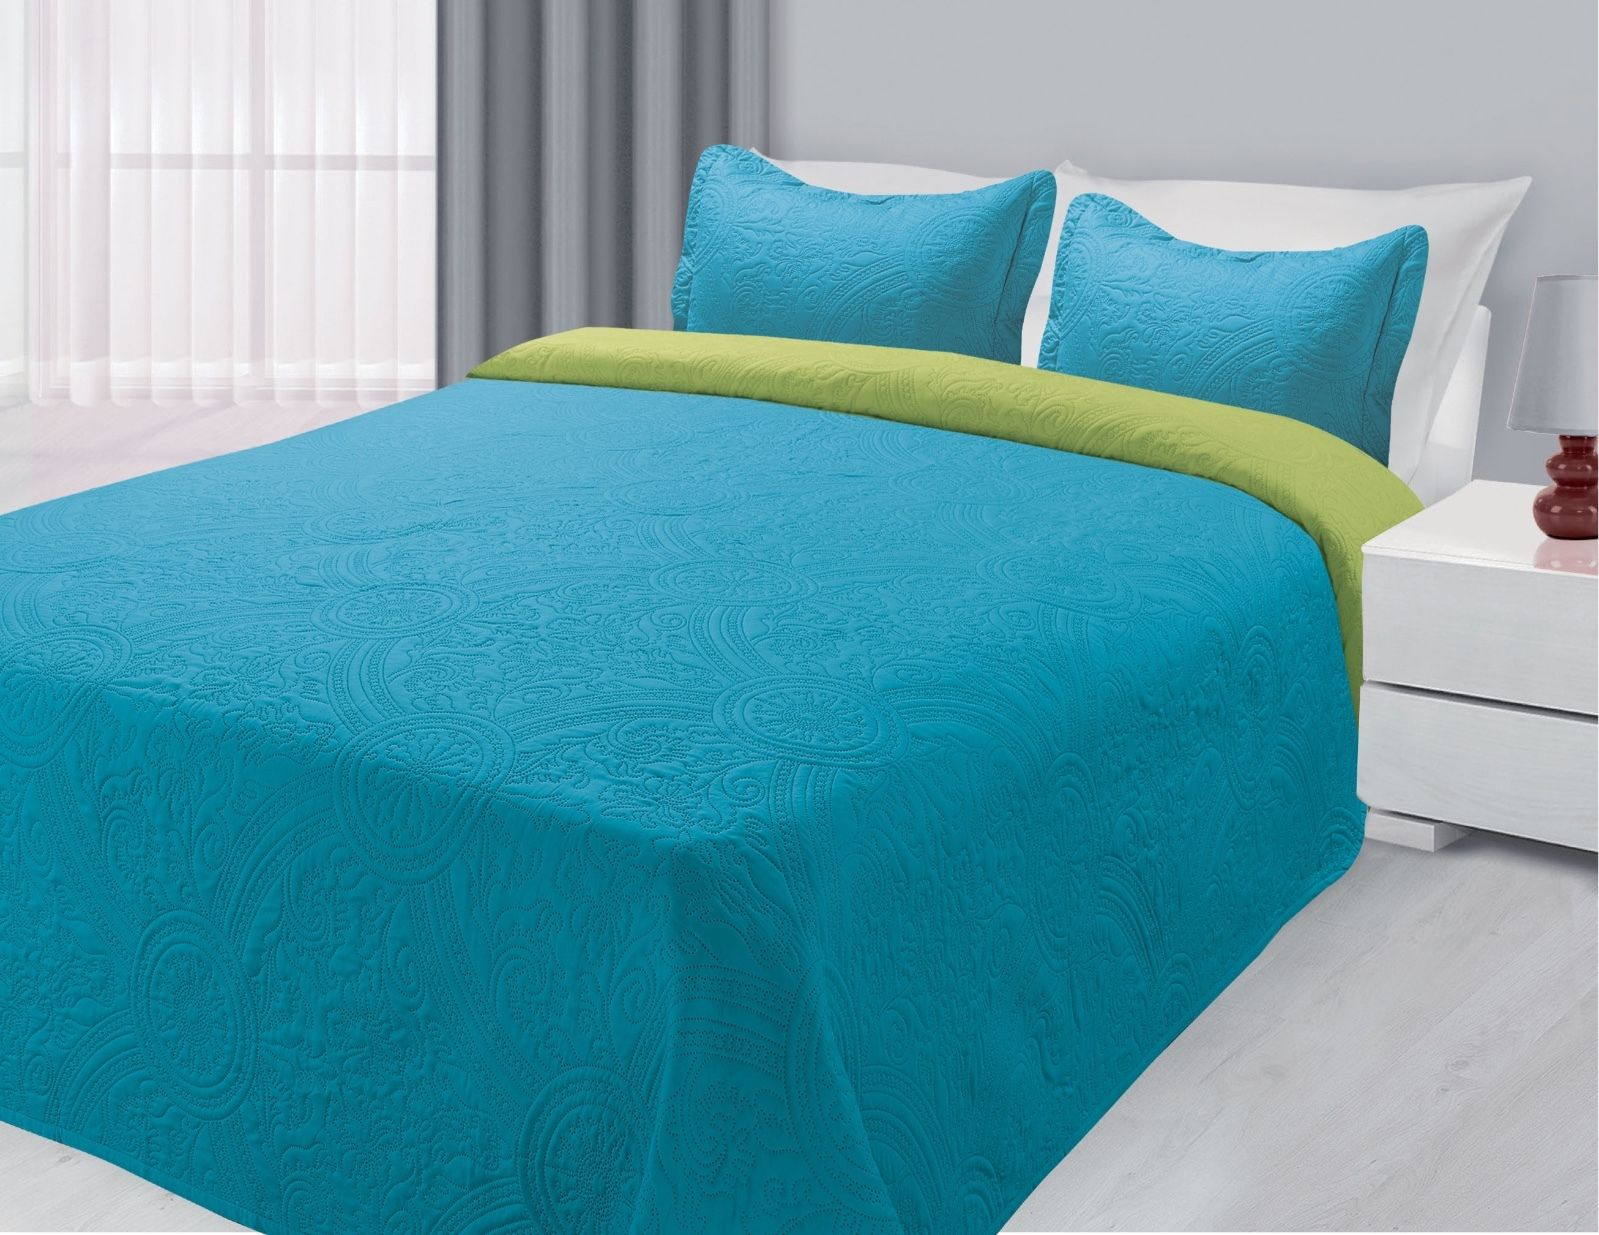 3-Piece Reversible Quilted Bedspread Coverlet Turquoise & Lime King Size by